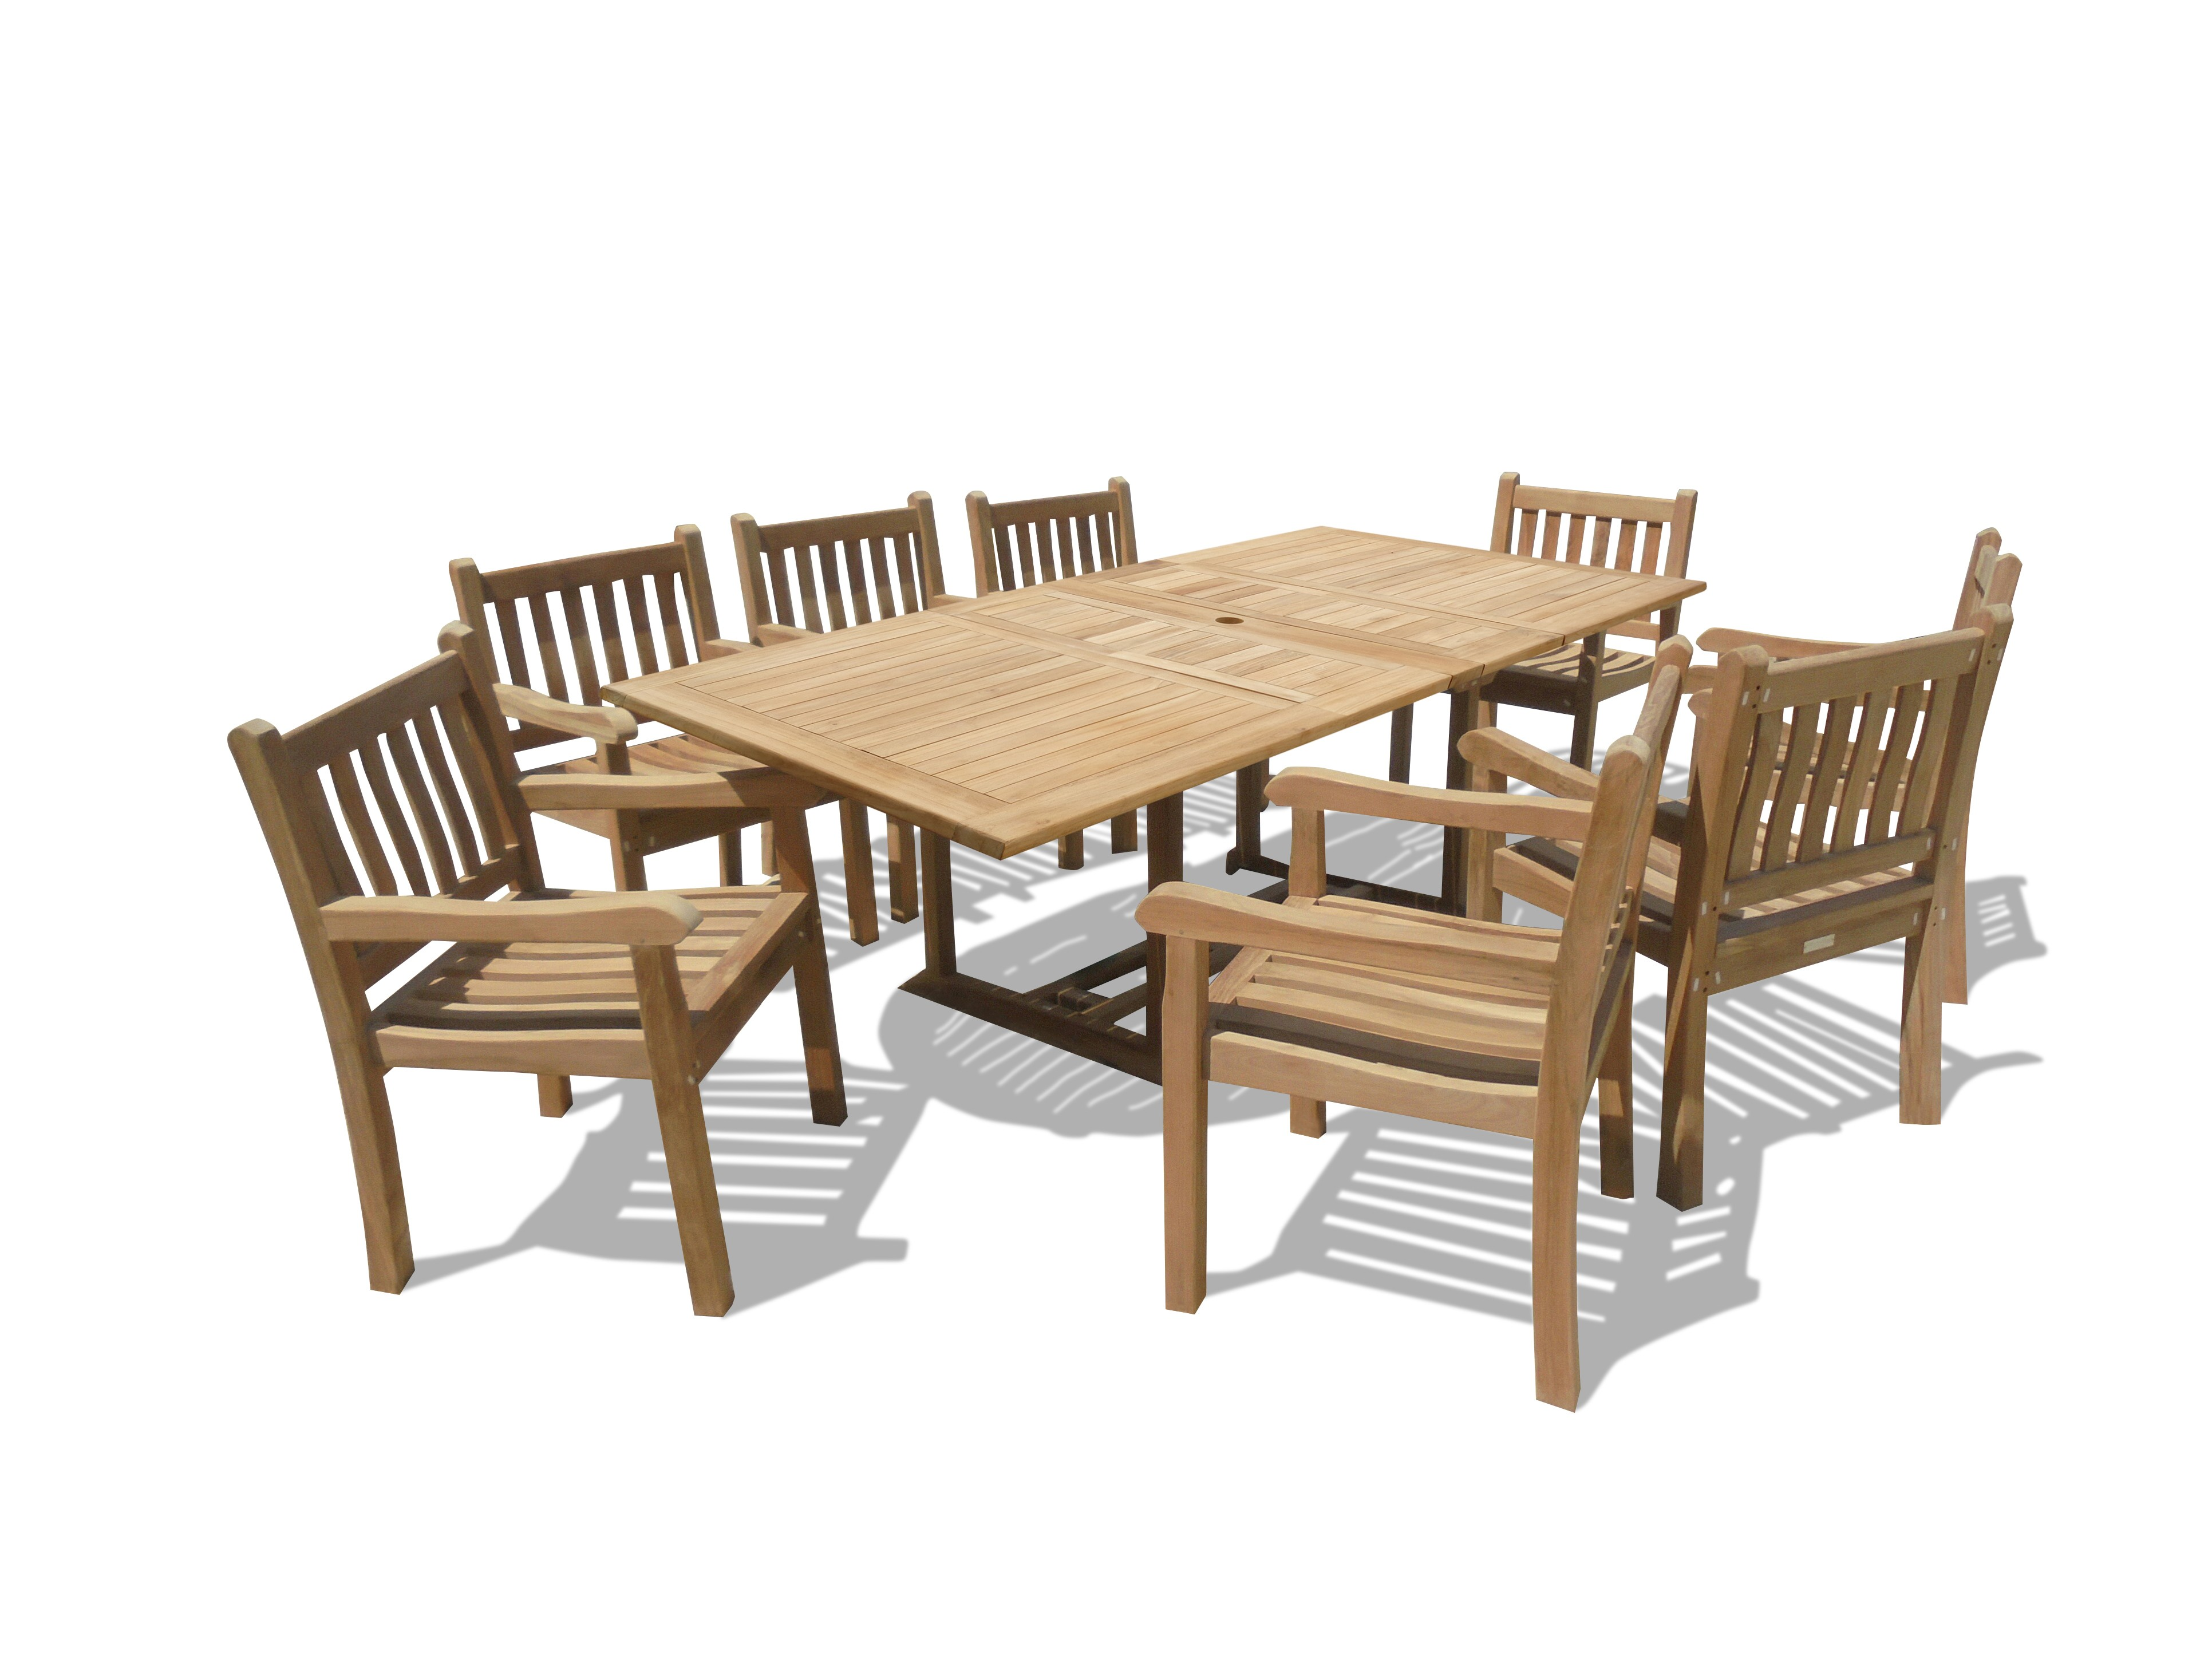 "Buckingham 82 x 39"" Rectangular Double Leaf Teak Extension Table w/ 8 Majestic Windsor Arm Chairs...seats 8"